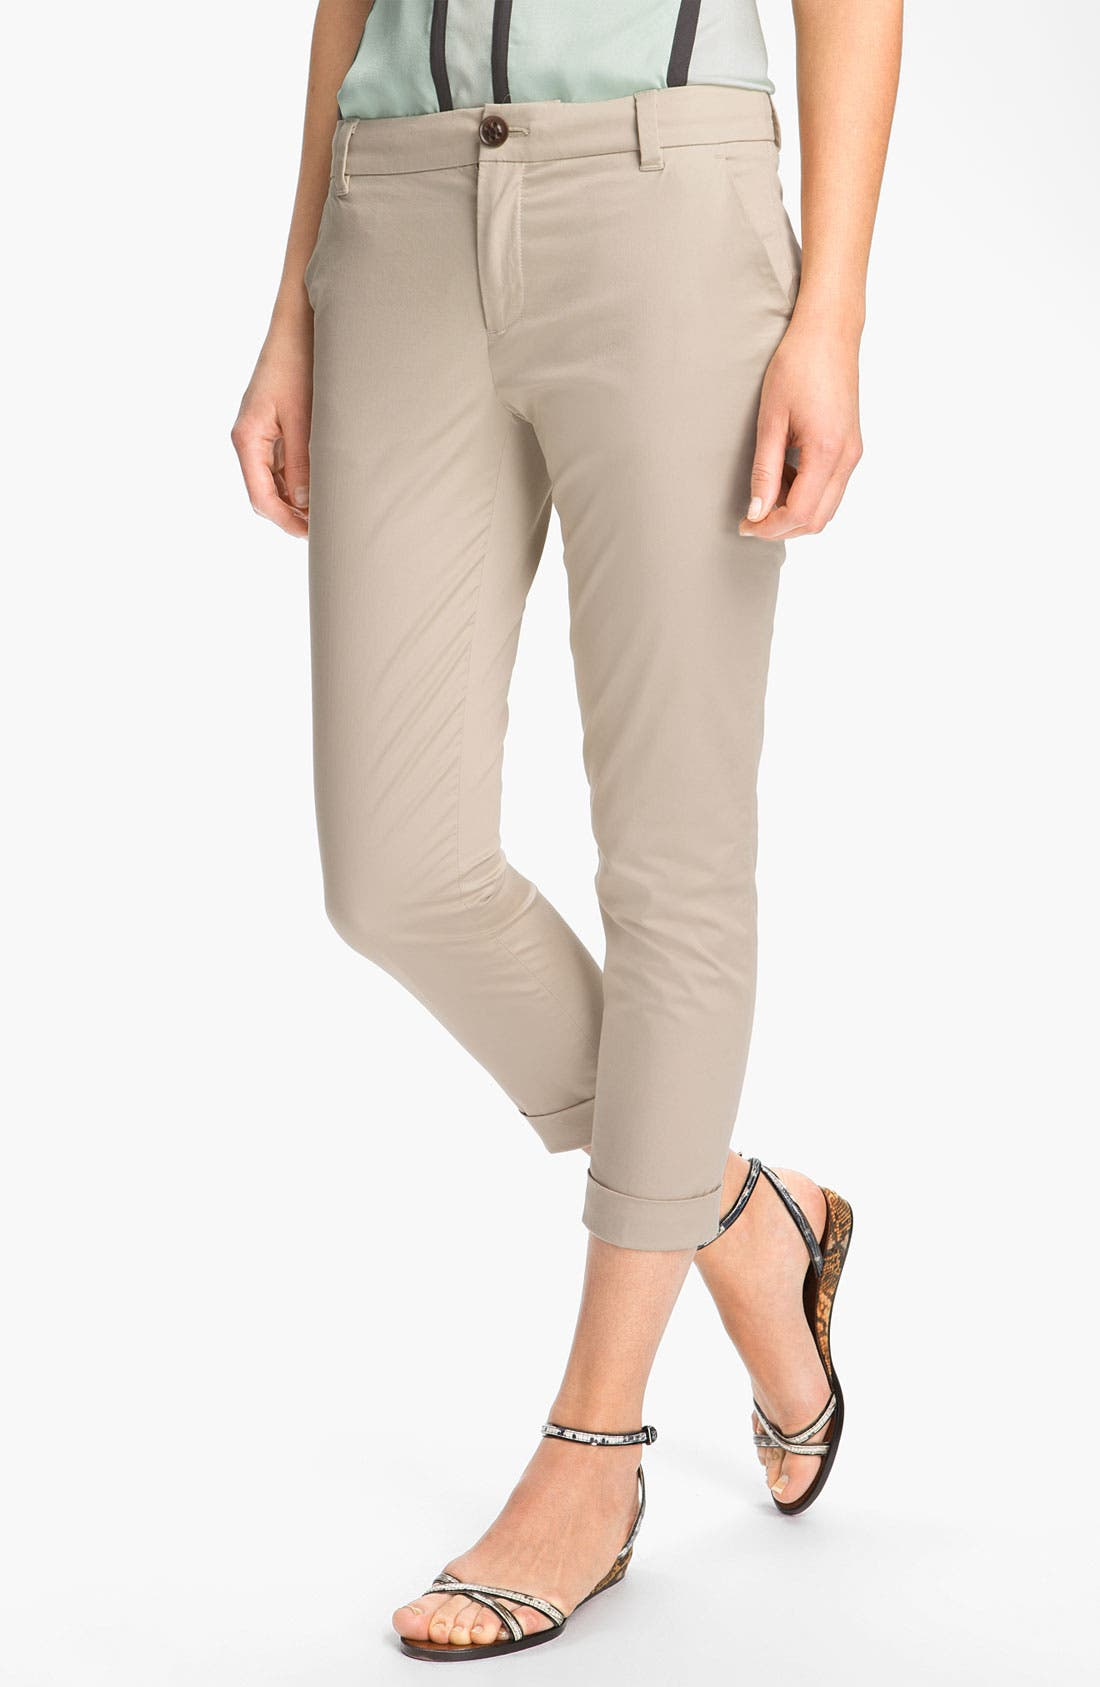 Alternate Image 1 Selected - J Brand Ready-to-Wear 'Patti' Chino Pants